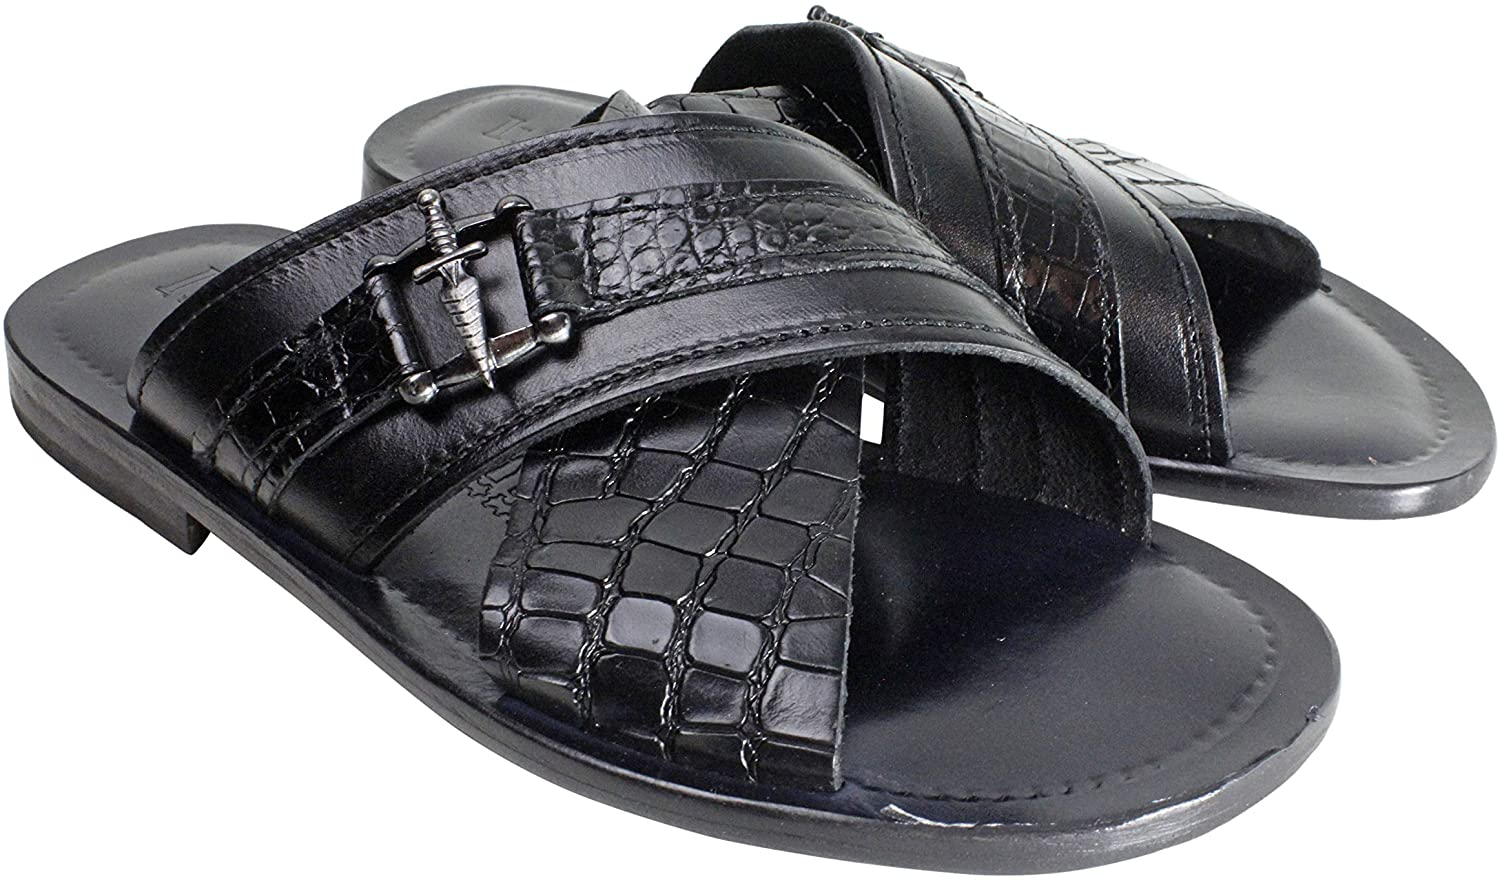 Ivan Troy Elhadji Men's Italian Leather Sandals Shoes/HandmadeMen's Sandals (Black, 8)